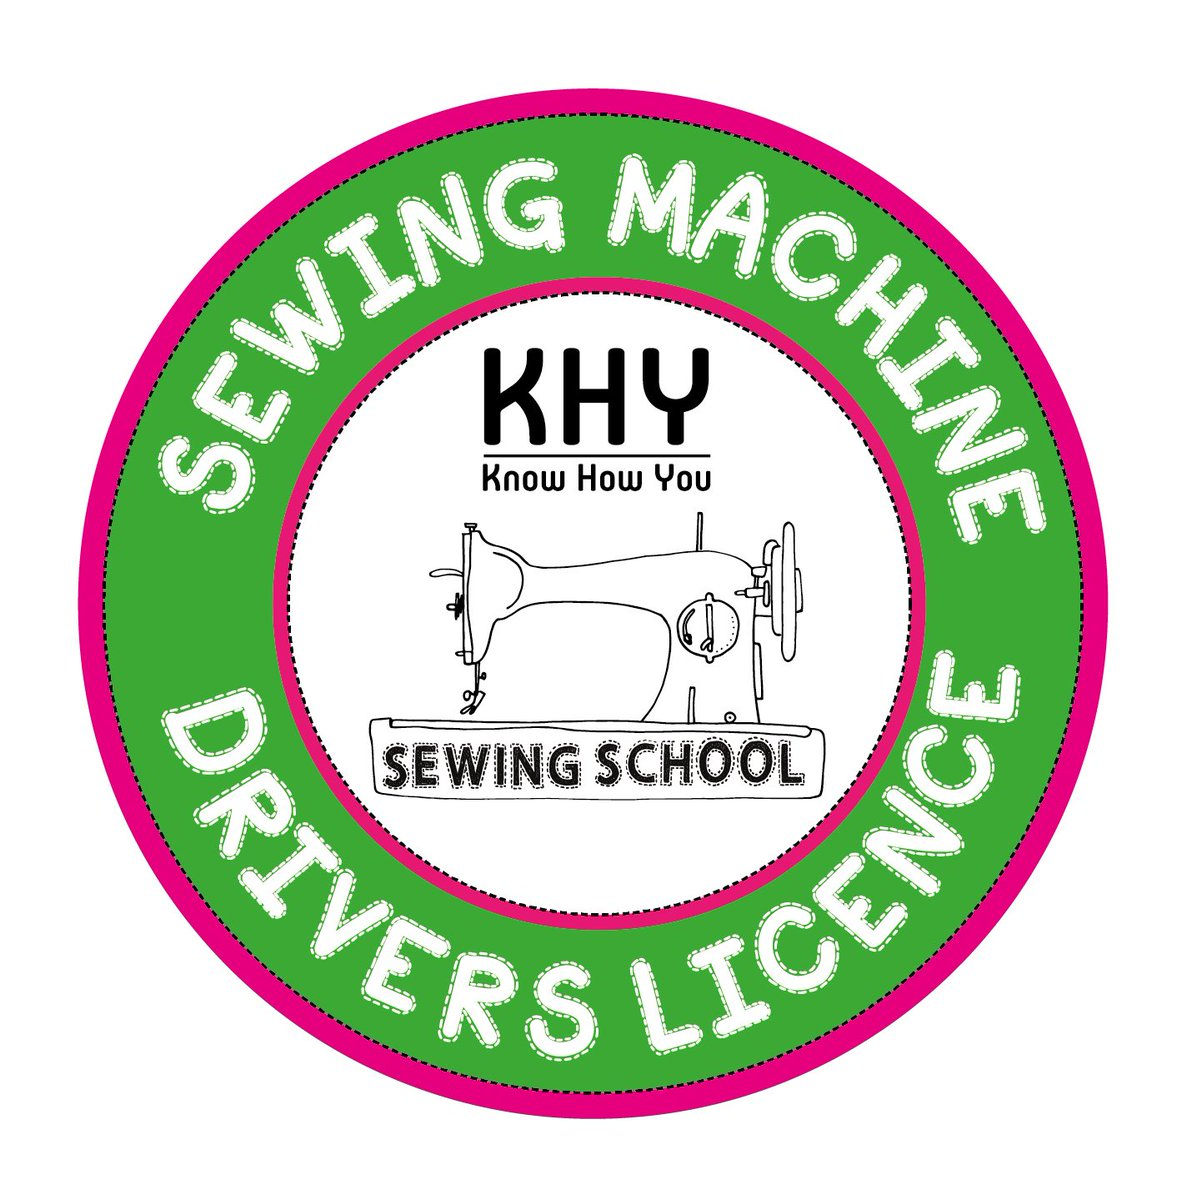 We are firing up our machines ready for kids summer sewing starting on 27th July with our ever popular learn to sew session in our studio @bppmansion  Check out our Facebook events or website for all dates and adults sewing too.    https://www.knowhowyou.co.uk/summer-classes-2/…pic.twitter.com/W5taZ0hYLG